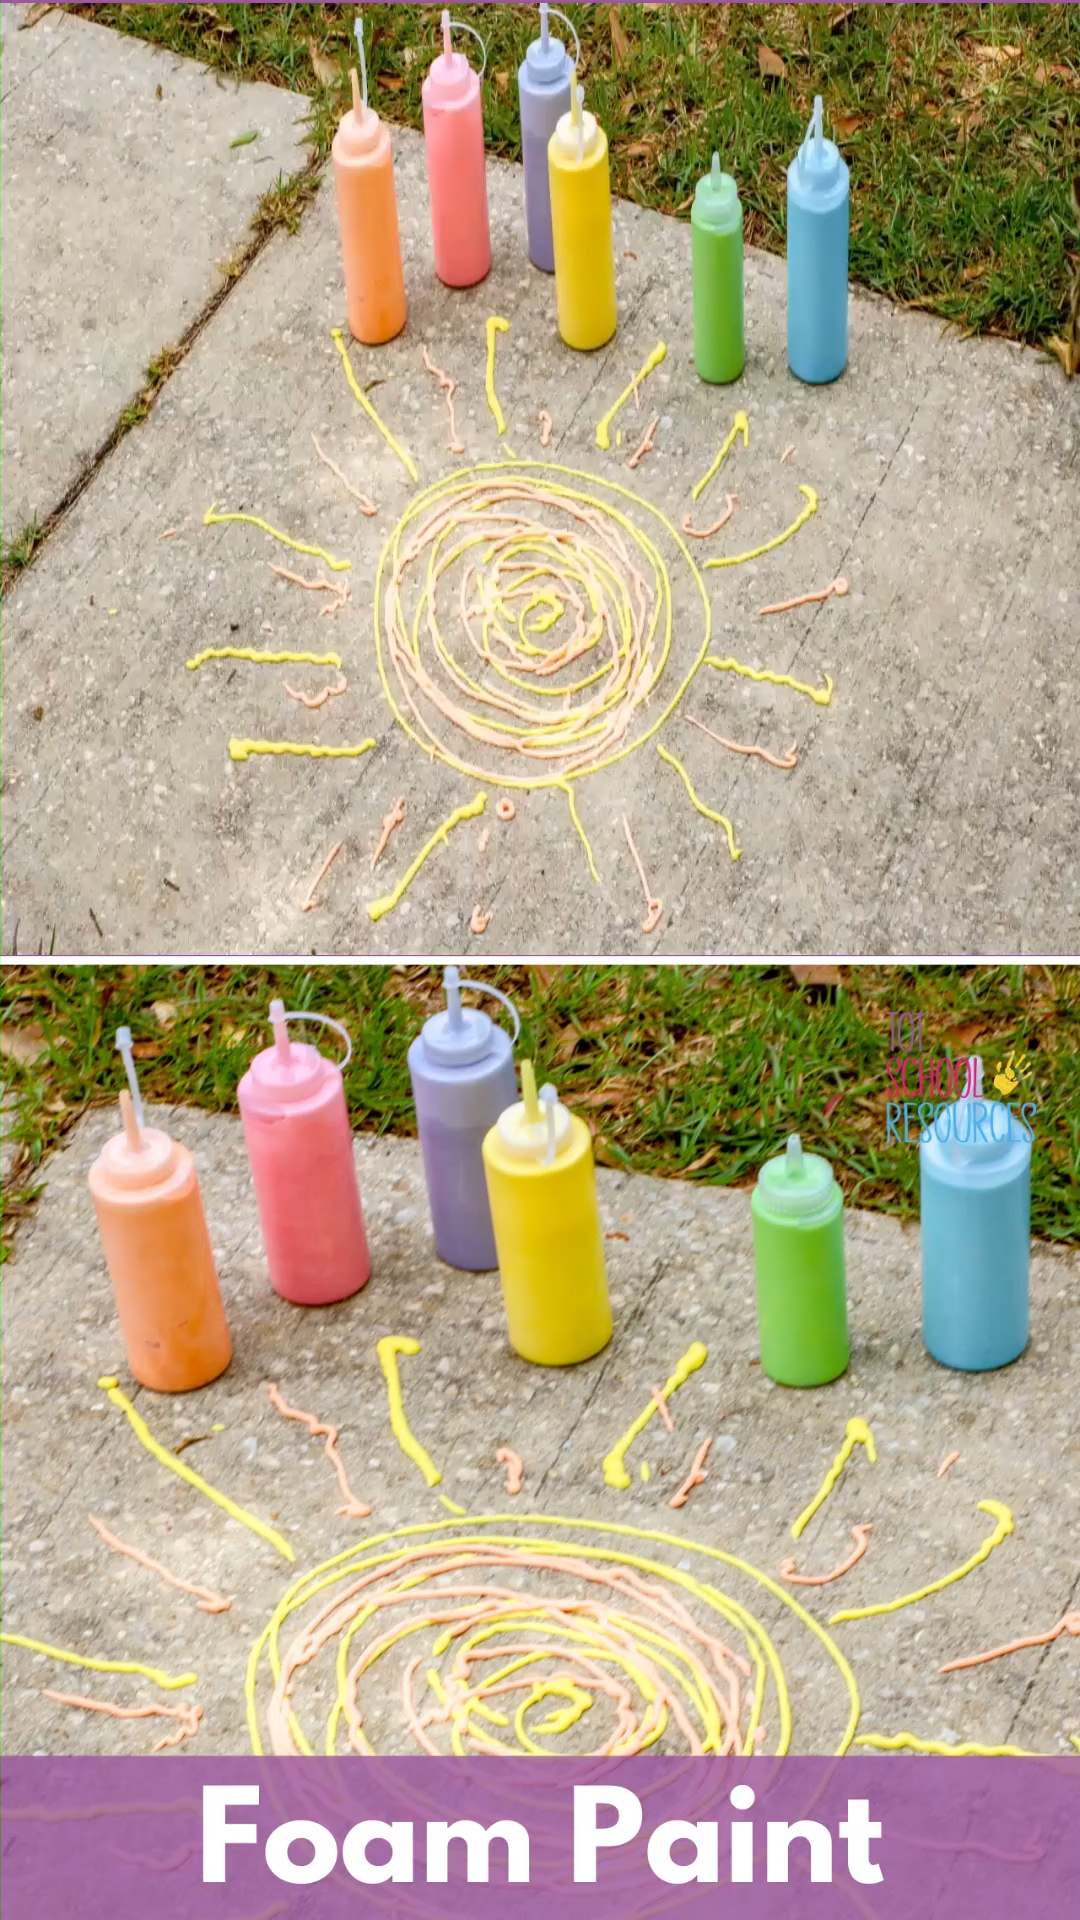 DIY Sidewalk Foam -   19 diy projects For Boys food coloring ideas